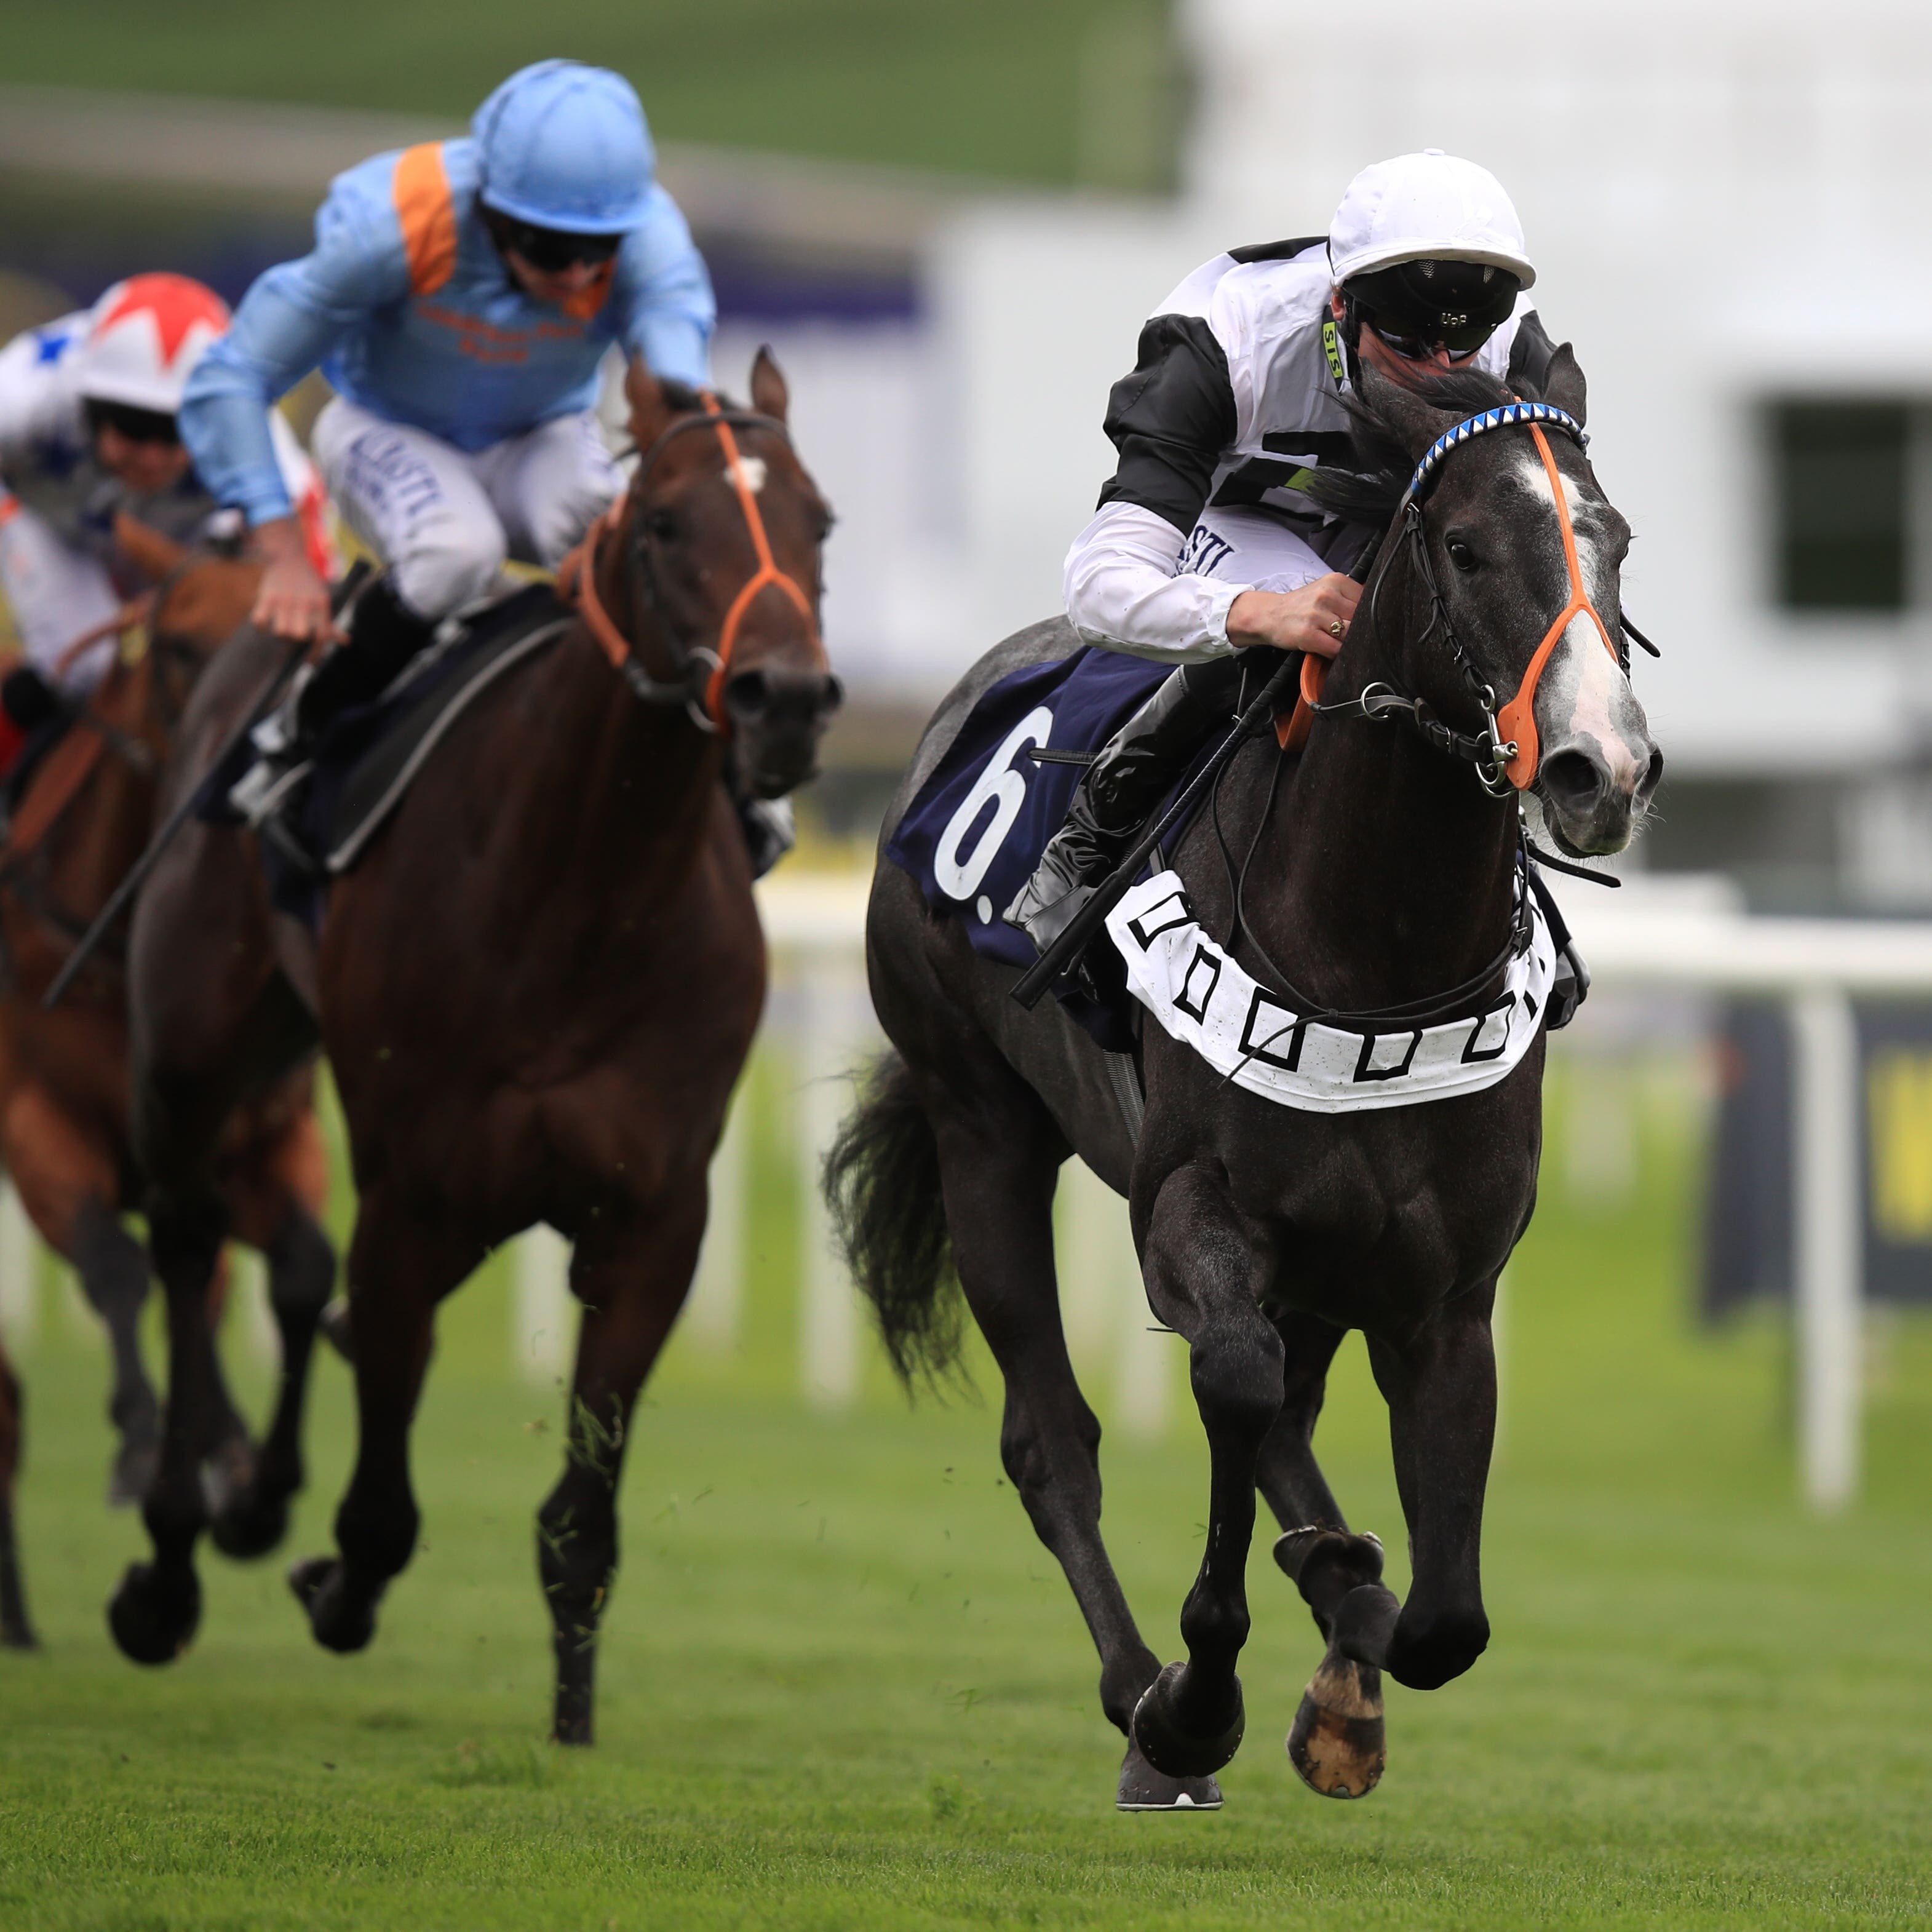 2000 Guineas runner-up Tip Two Win who will be aimed at next year's Lockinge after having time called on his current campaign